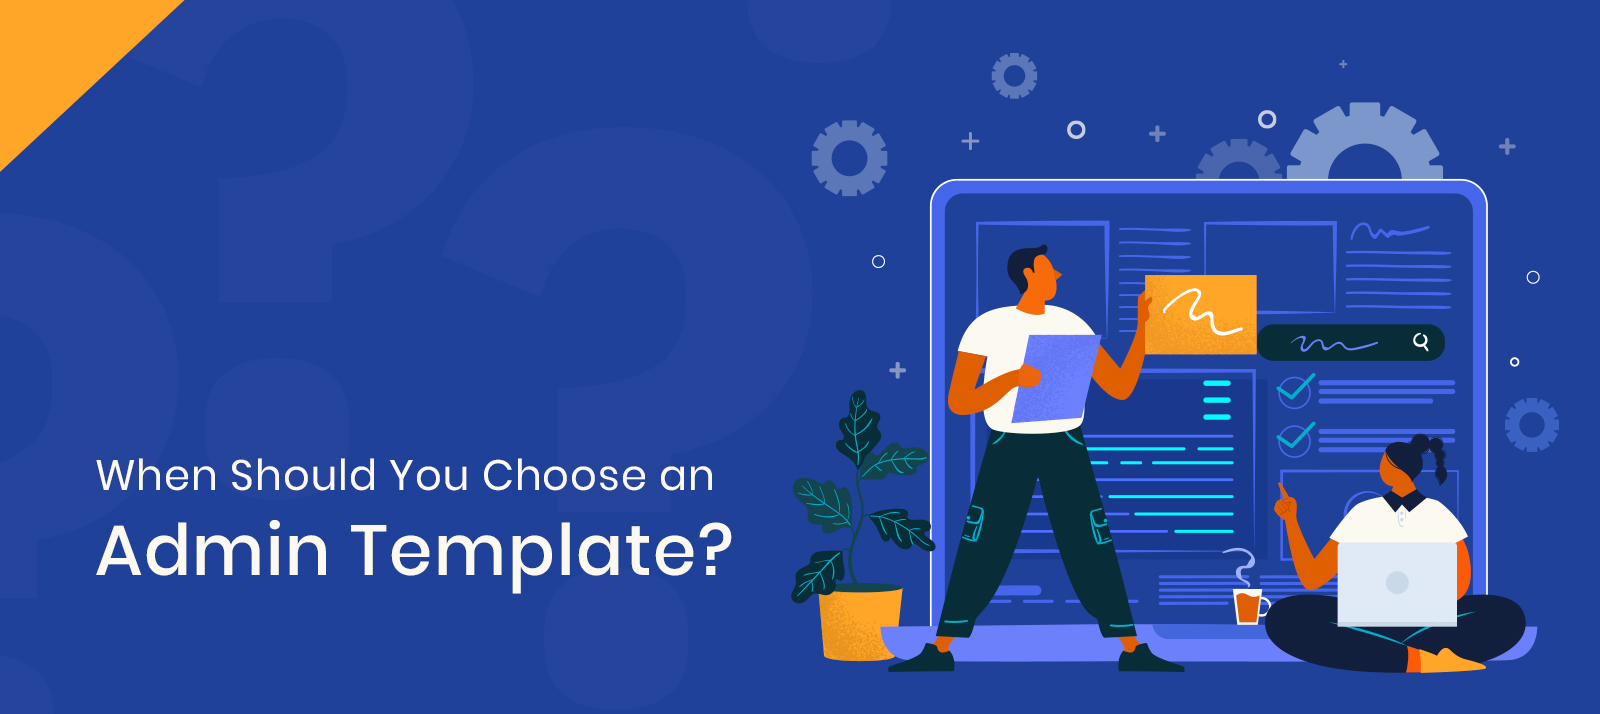 When Should You Choose an Admin Template? Best Free Admin Template in 2021